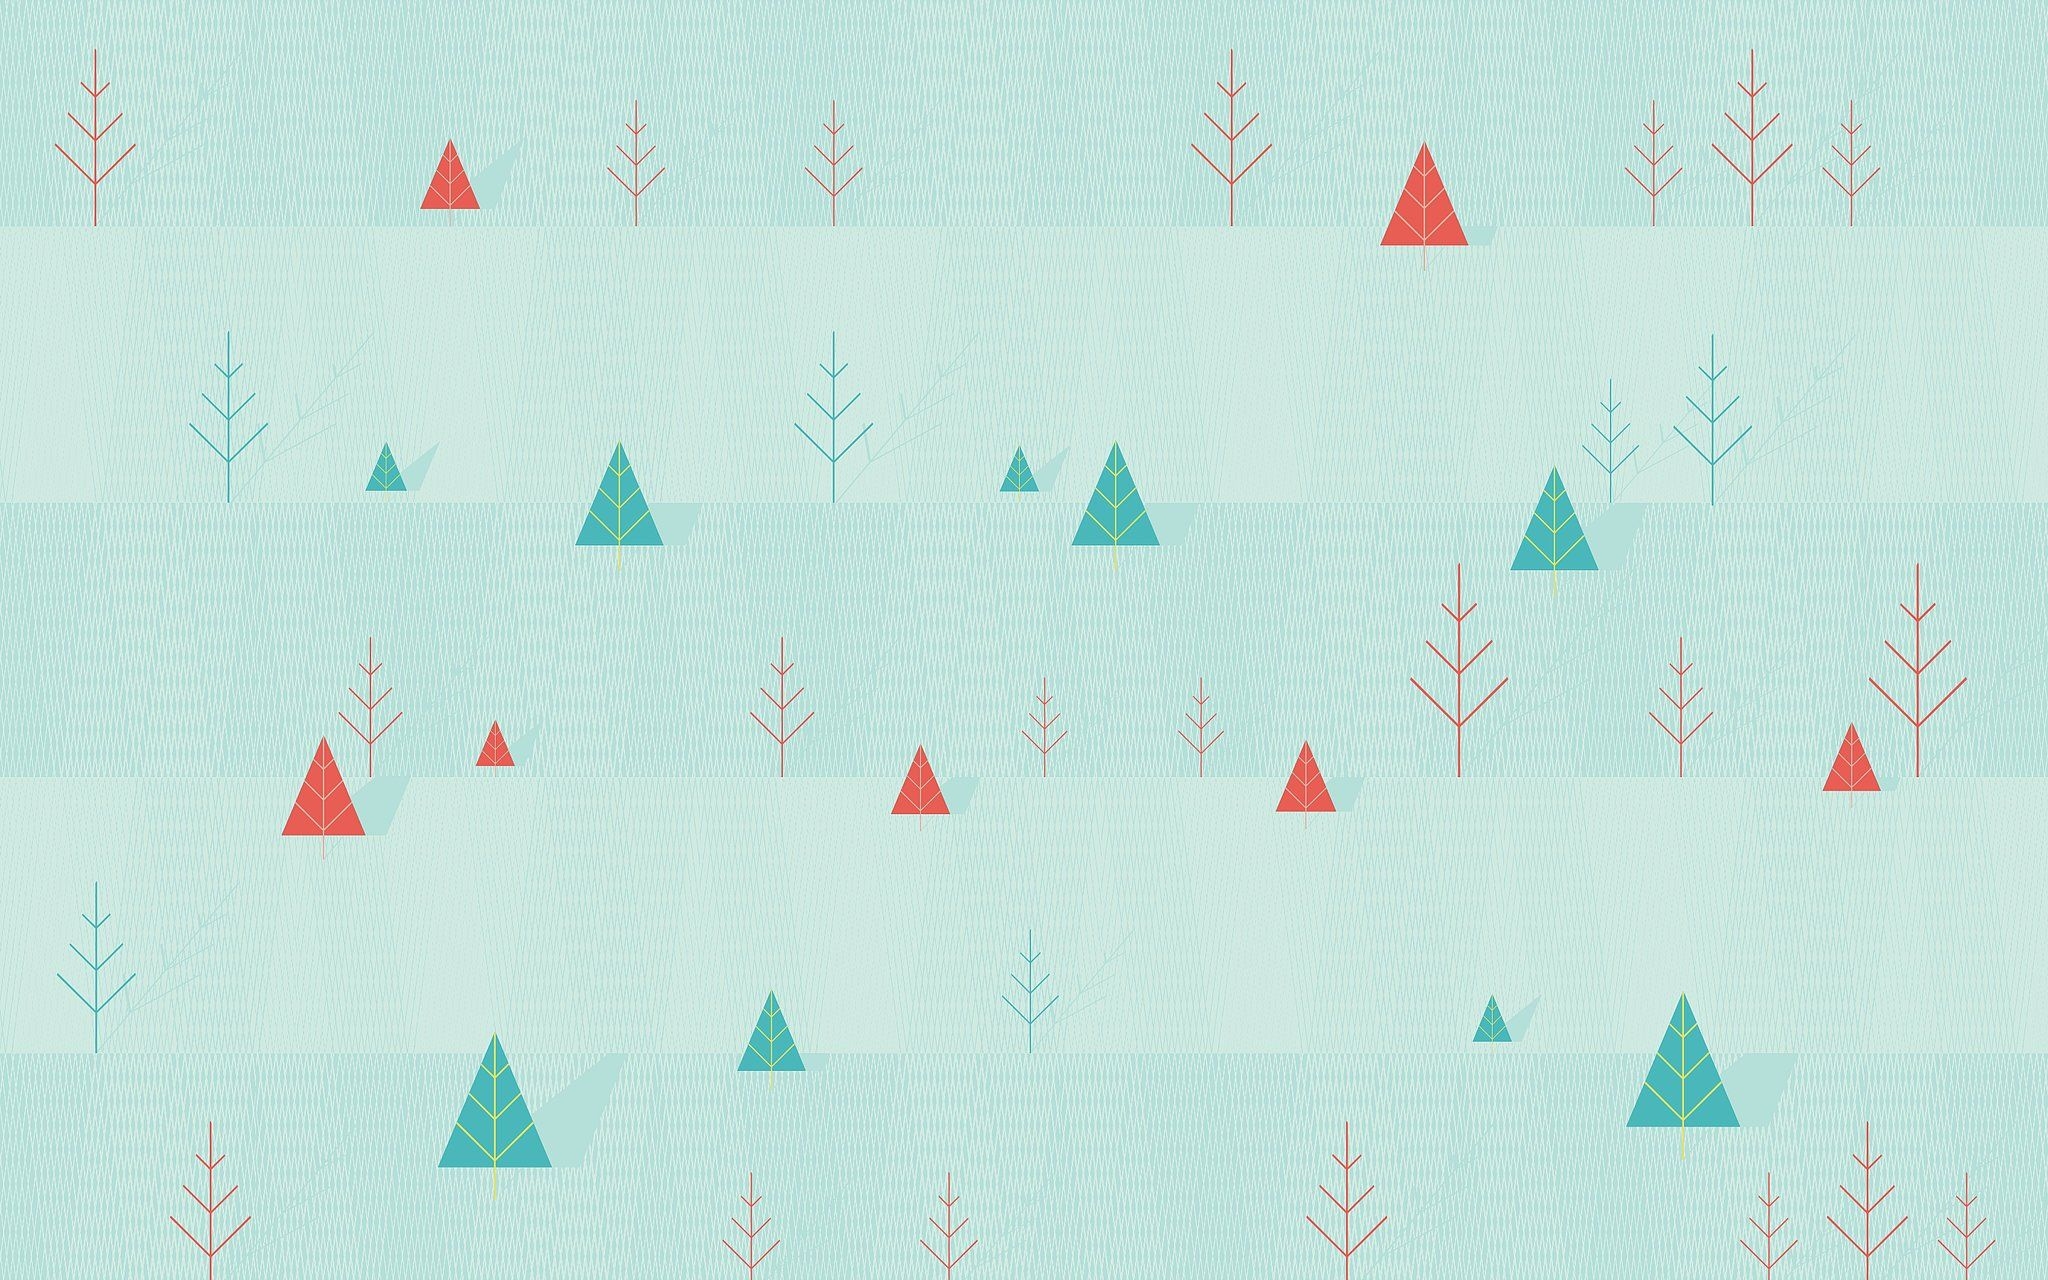 Free Holiday Desktop Wallpaper You Ll Never Want To Take Down Winter Wallpaper Christmas Desktop Wallpaper Winter Wallpaper Desktop